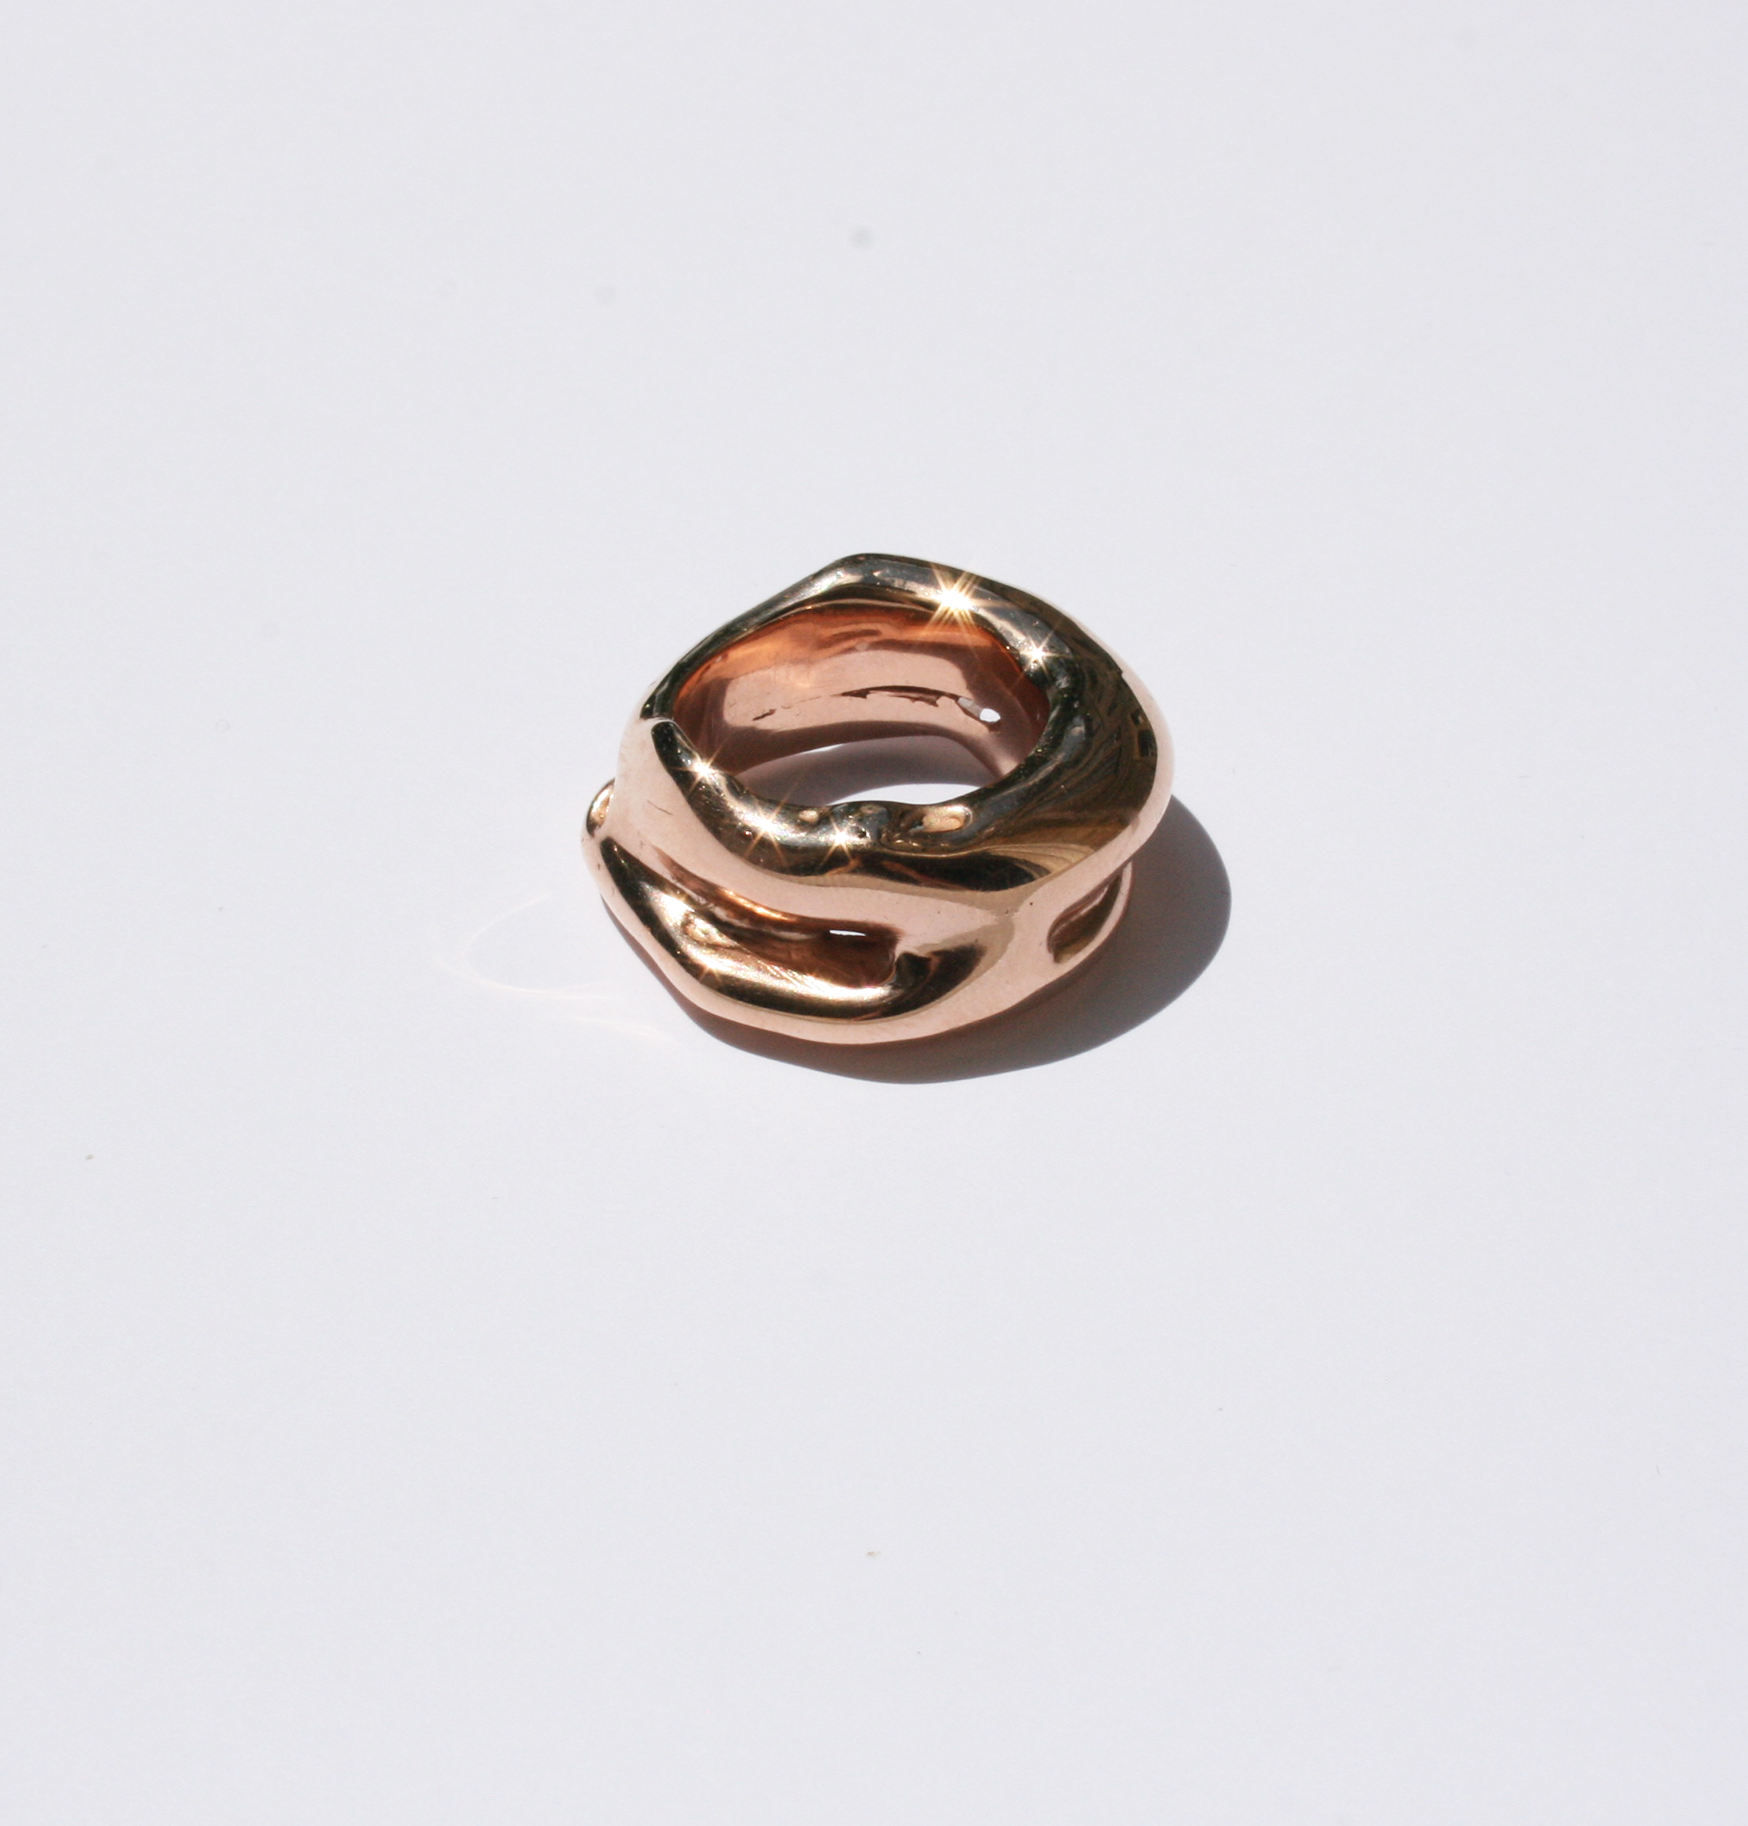 Mauna Loa rose gold ring - Filia Rex